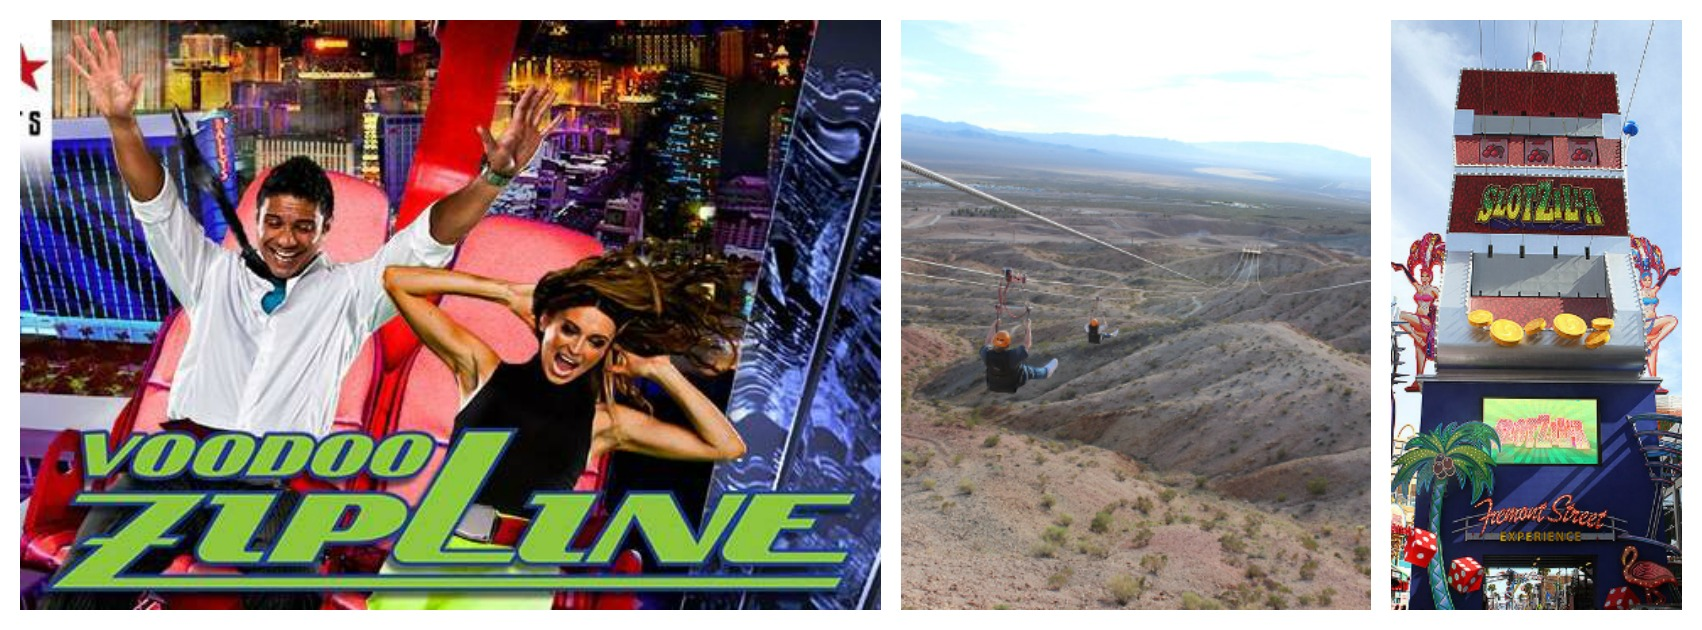 Las Vegas Extreme Activities And Adventures